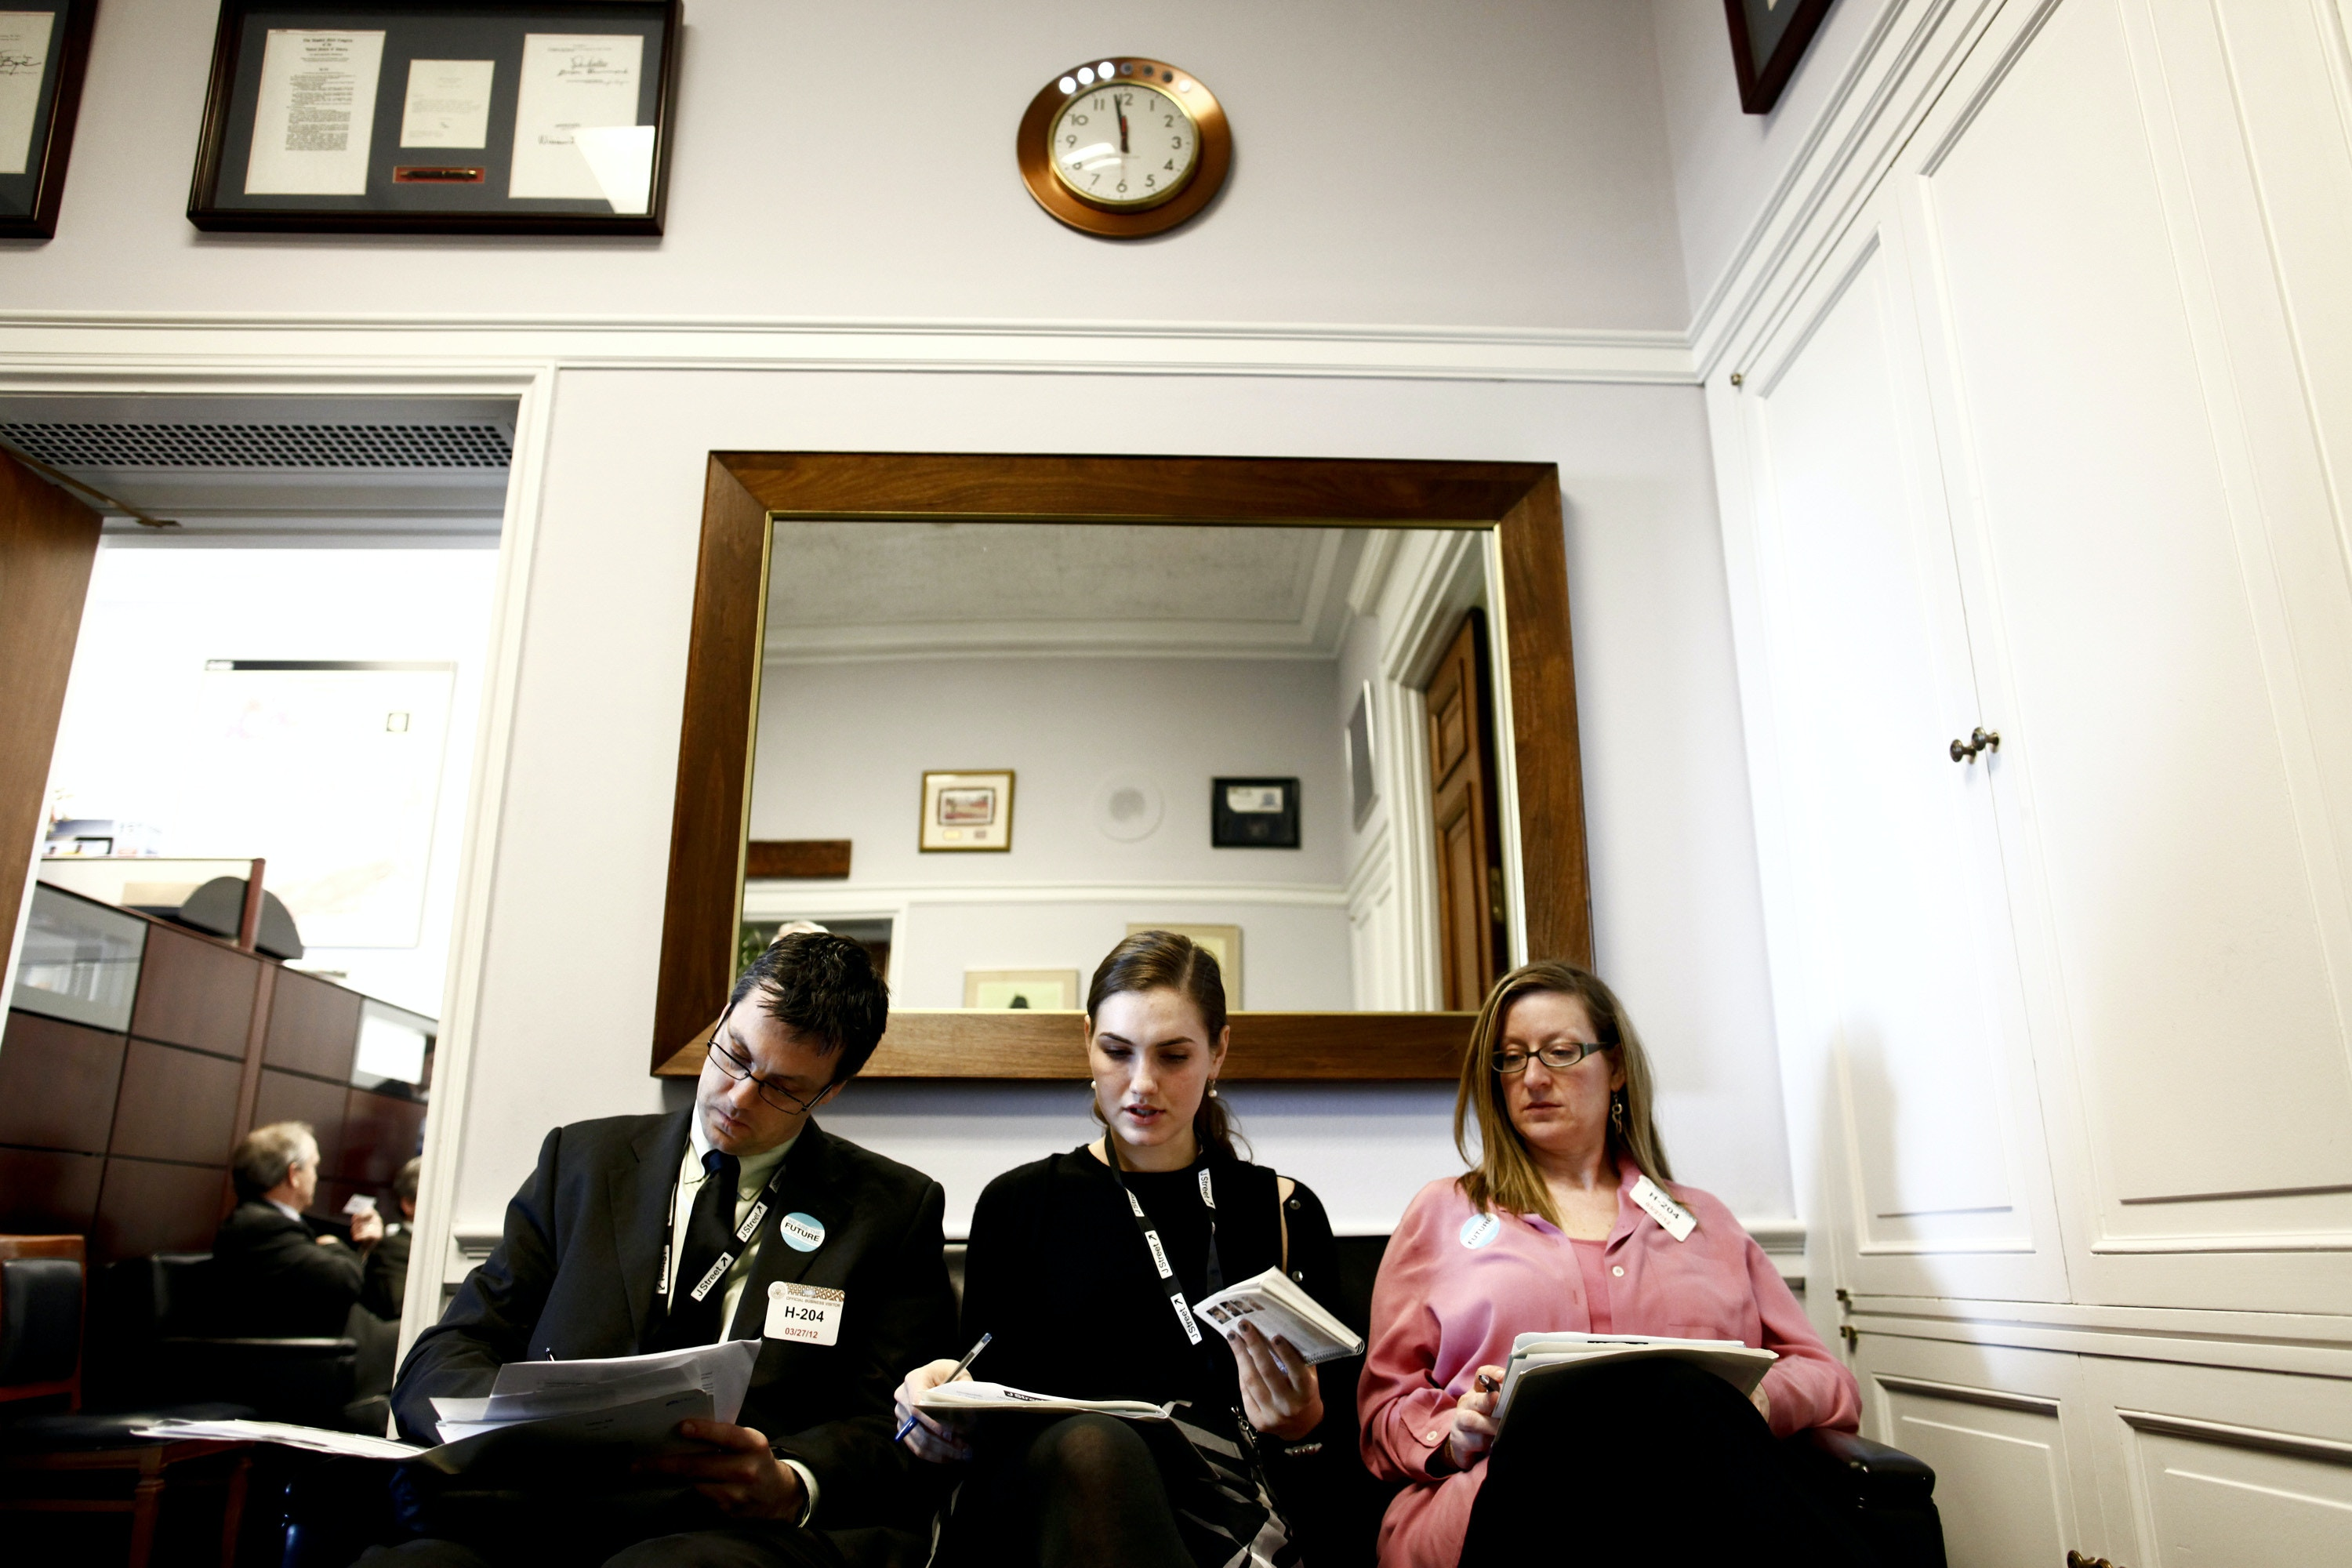 Adi Cohen, left, Hannah Duncan, center, and Sherry Lifton, activists from a pro-Israel group called J Street, wait in the office of Rep. Ed Pastor (D-Ariz.) while lobbying members of Congress on Capitol Hill in Washington, March 27, 2012. Members of the group, which was formed in part as an alternative to the more conservative American Israel Public Affairs Committee, were in Washington lobbying representatives to show that not all American Jews were in support of a military strike on Iran. (Luke Sharrett/The New York Times)